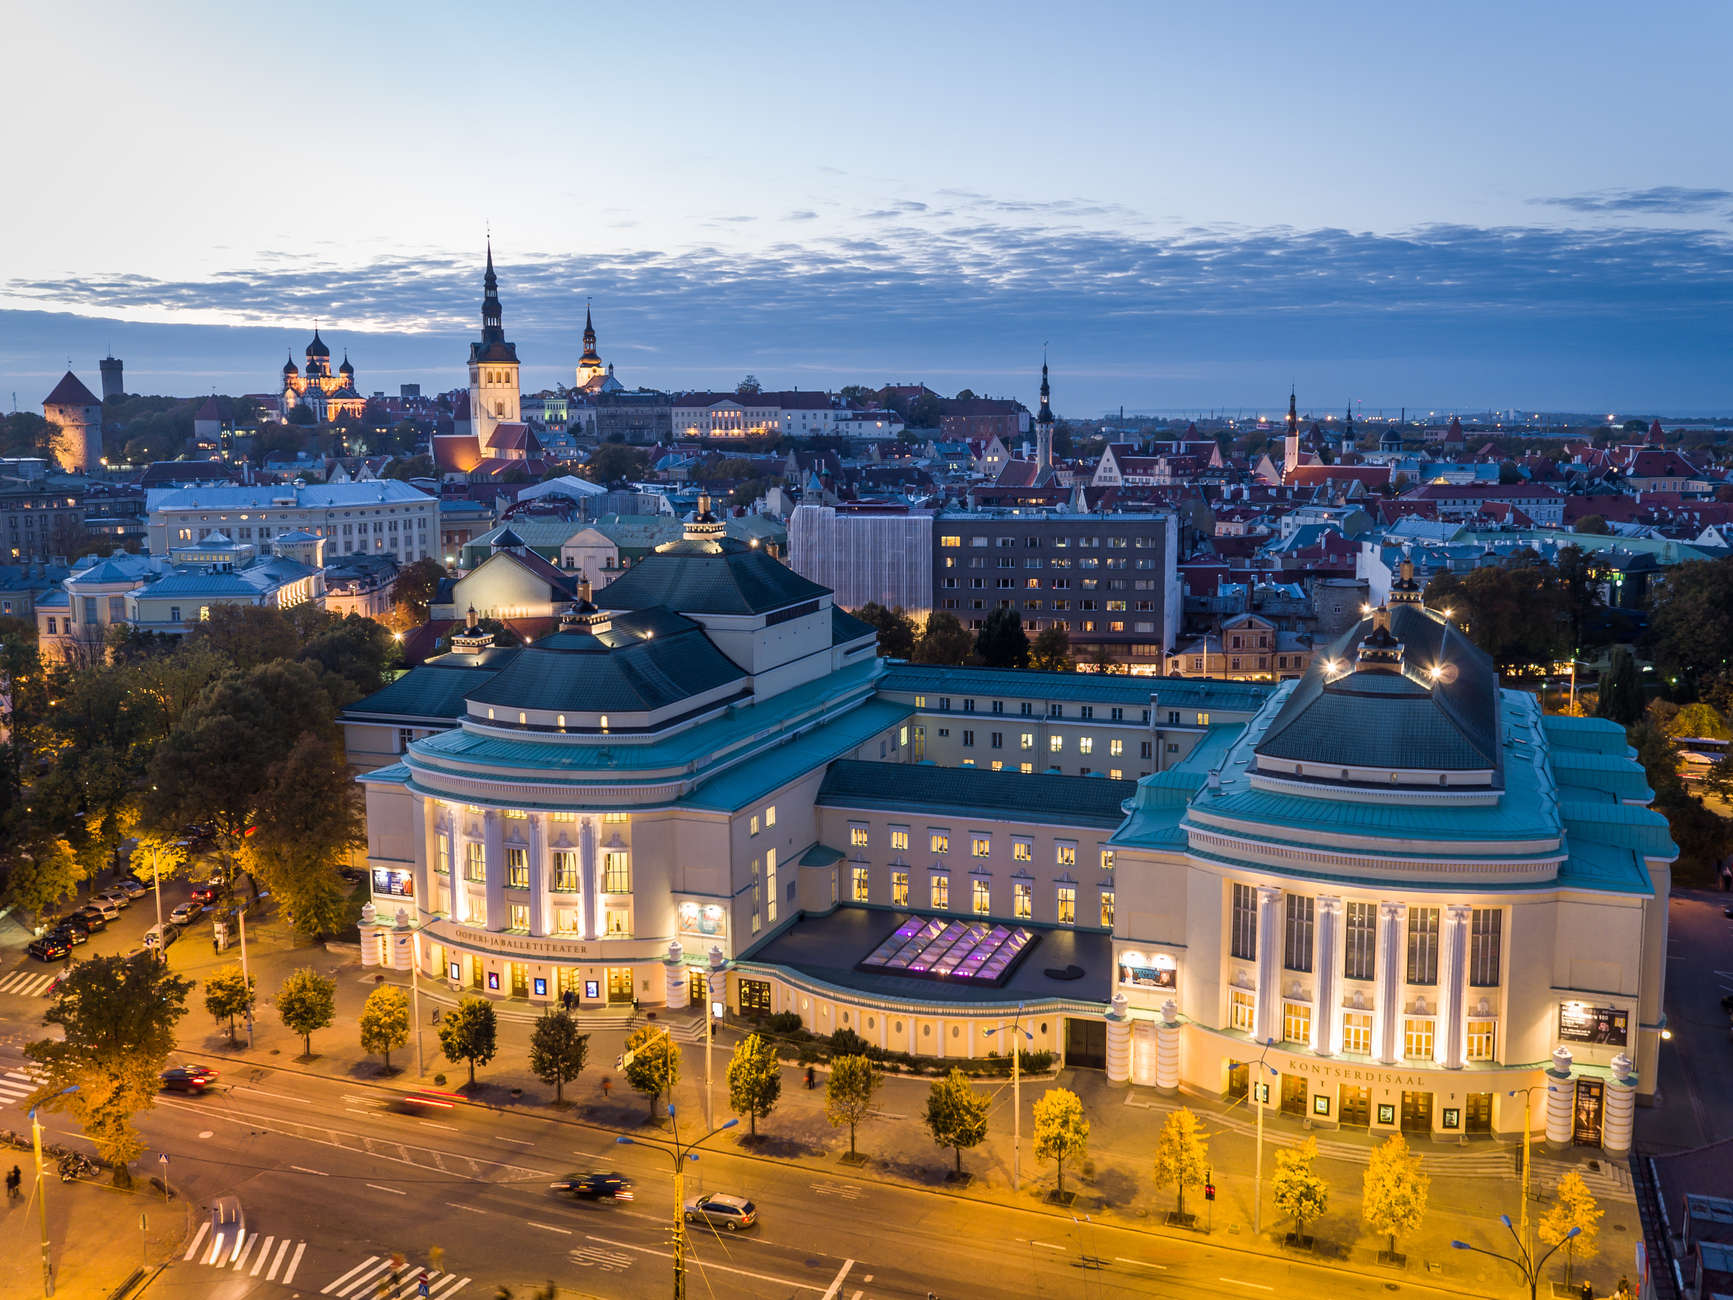 Aerial view of the Estonian National Opera House in the city centre of Tallinn, Estonia